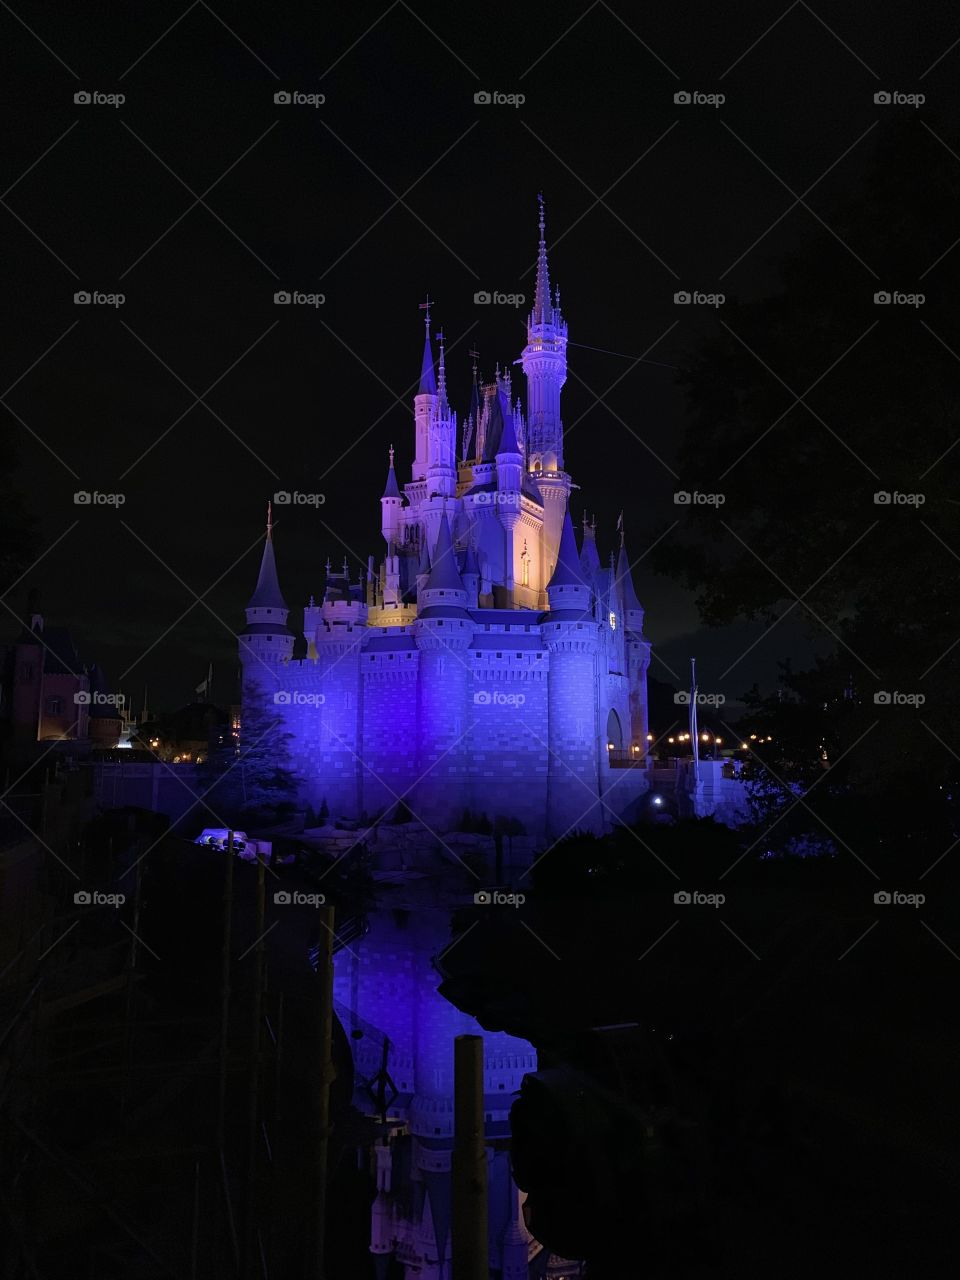 #day124 Everyday WDW Orlando Florida.  I have been lost on Disney Properties consecutively since 4/3/19 You can find my encounter https://www.facebook.com/selsa.susanna or on IG selsa_susanna Disney's Magic Kingdom 8-4-19 Sunday